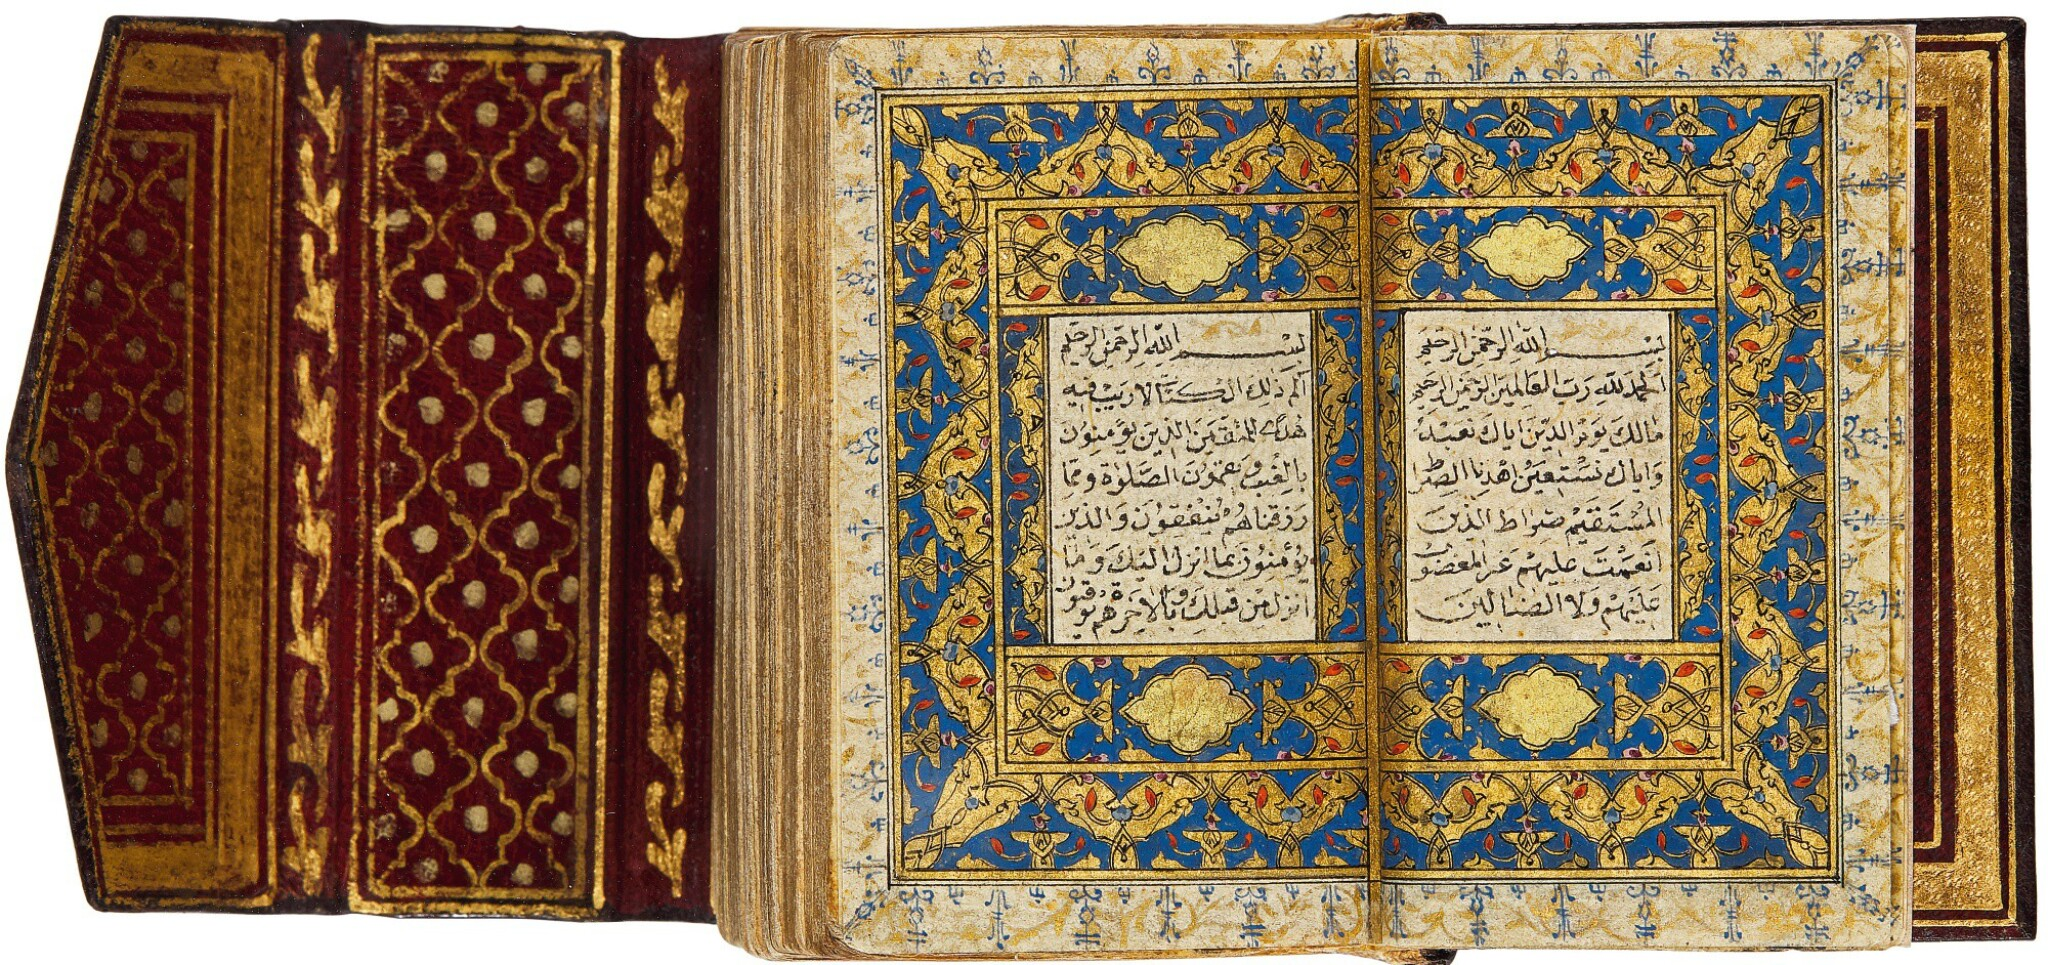 AN ILLUMINATED MINIATURE QUR'AN, TURKEY, OTTOMAN, 16TH CENTURY